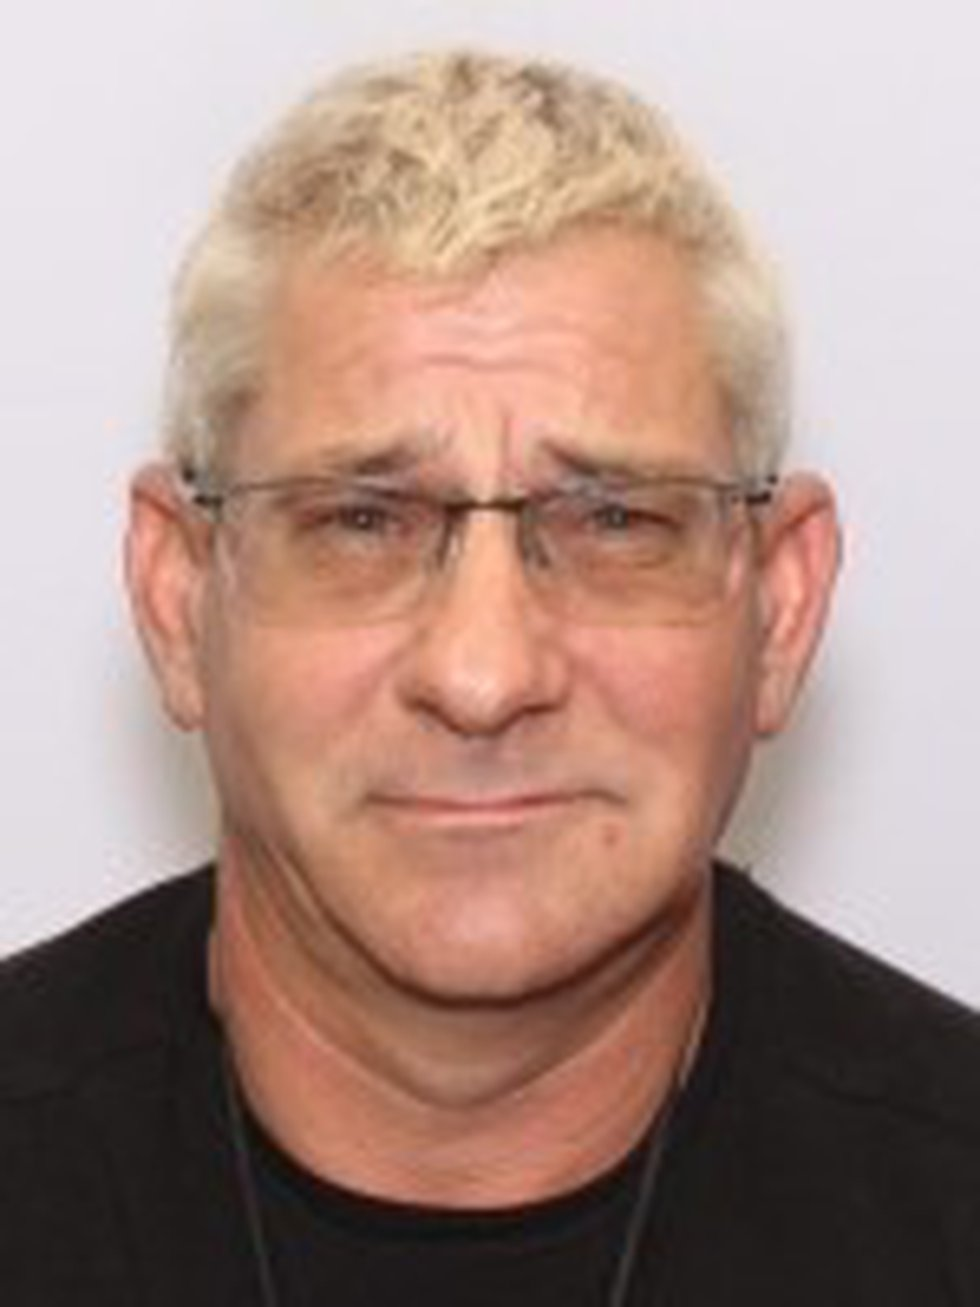 Ronald Kaiser, 52, of Warren was arrested for answering an on-line advertisement offering...